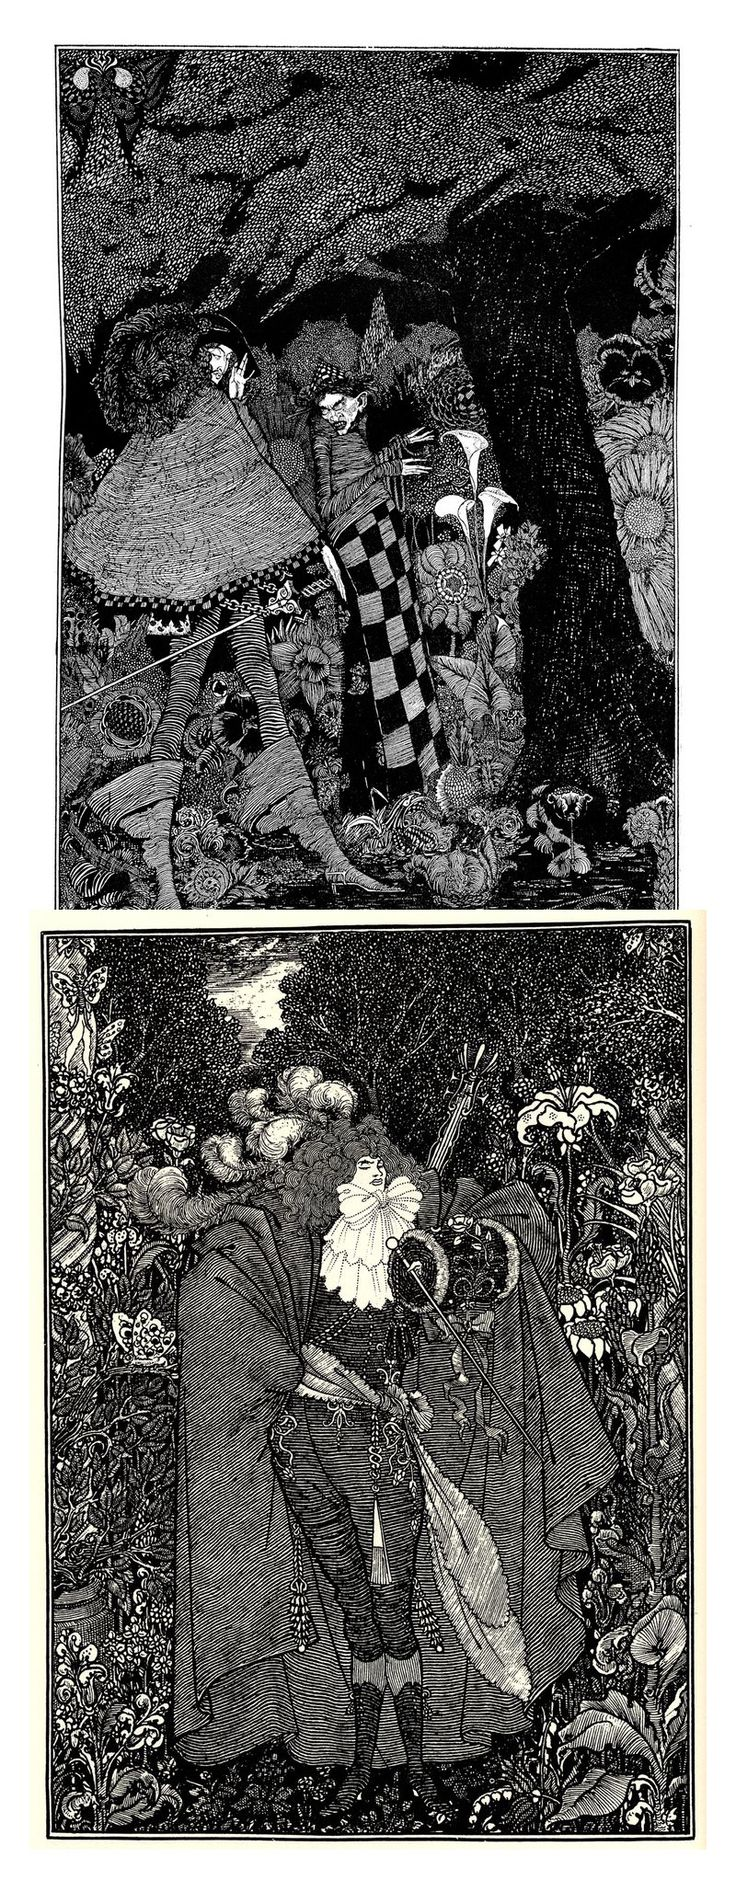 Top : 'What am I to do in the tree?' From The Tinder Box. Fairy tales by Hans Christian Andersen. Harry Clarke 1916. Bottom: 'Abbe Fanfreluche'. From 'Under the Hill'. Aubrey Beardsley 1895